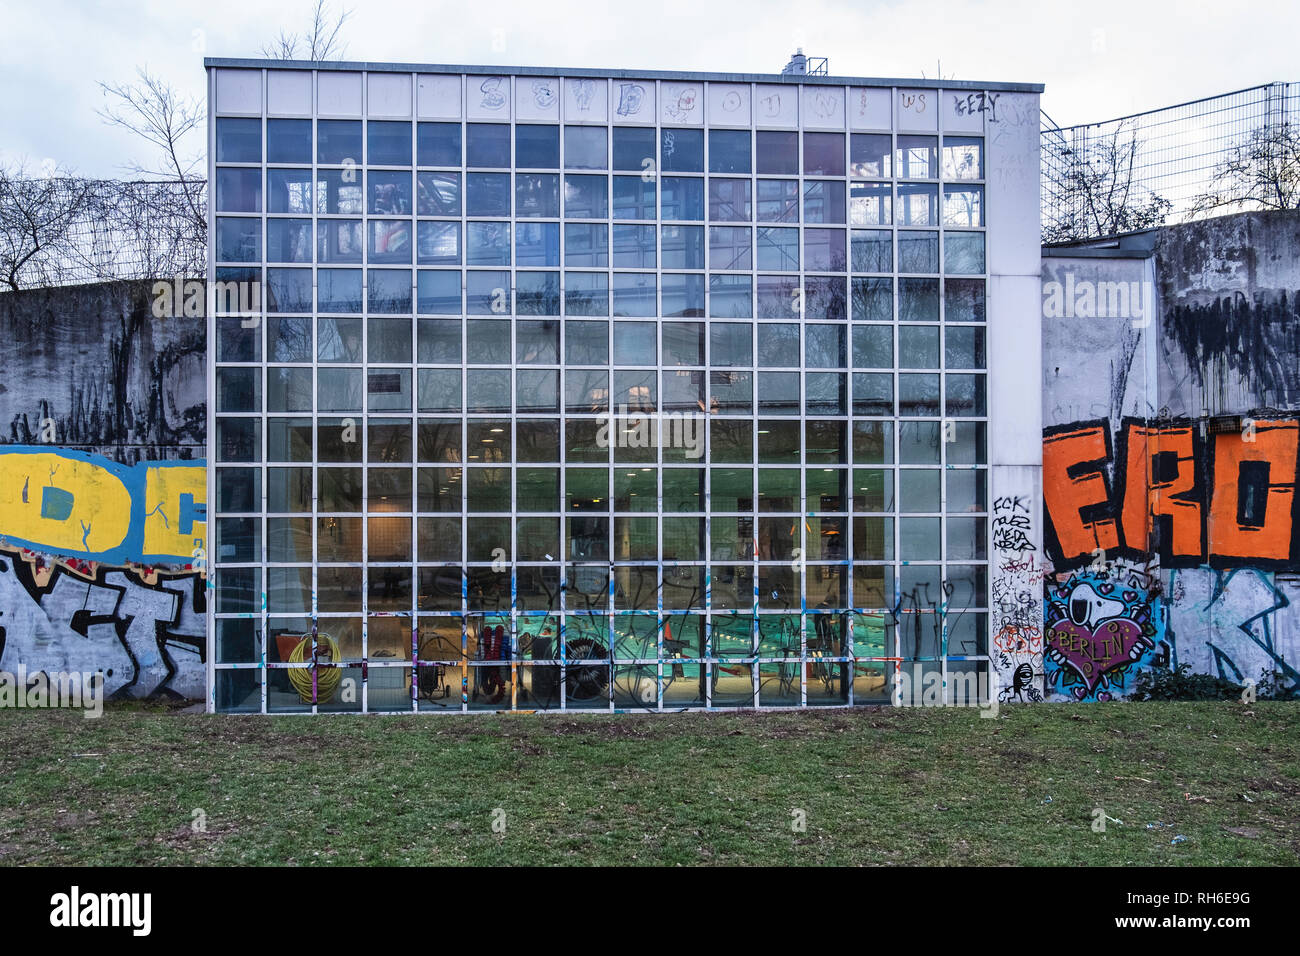 Friedrichshain-Kreuzberg, Berlin, Germany. 31st January, 2019. An indoor pool is a popular venue in Gorlitzer park. As winter creeps slowly into its final months, the days are cold and grey but Berliners venture out and enjoy the ordinary and extraordinary in their capital city. Hungry birds take to the sky above historic railway stations, the pink drainage pipes of construction sites frame bare trees, sculptures decorate the public parks, indoor pools are crowded and graffiti and posters decorate the city. Credit: Eden Breitz/Alamy Live News - Stock Image